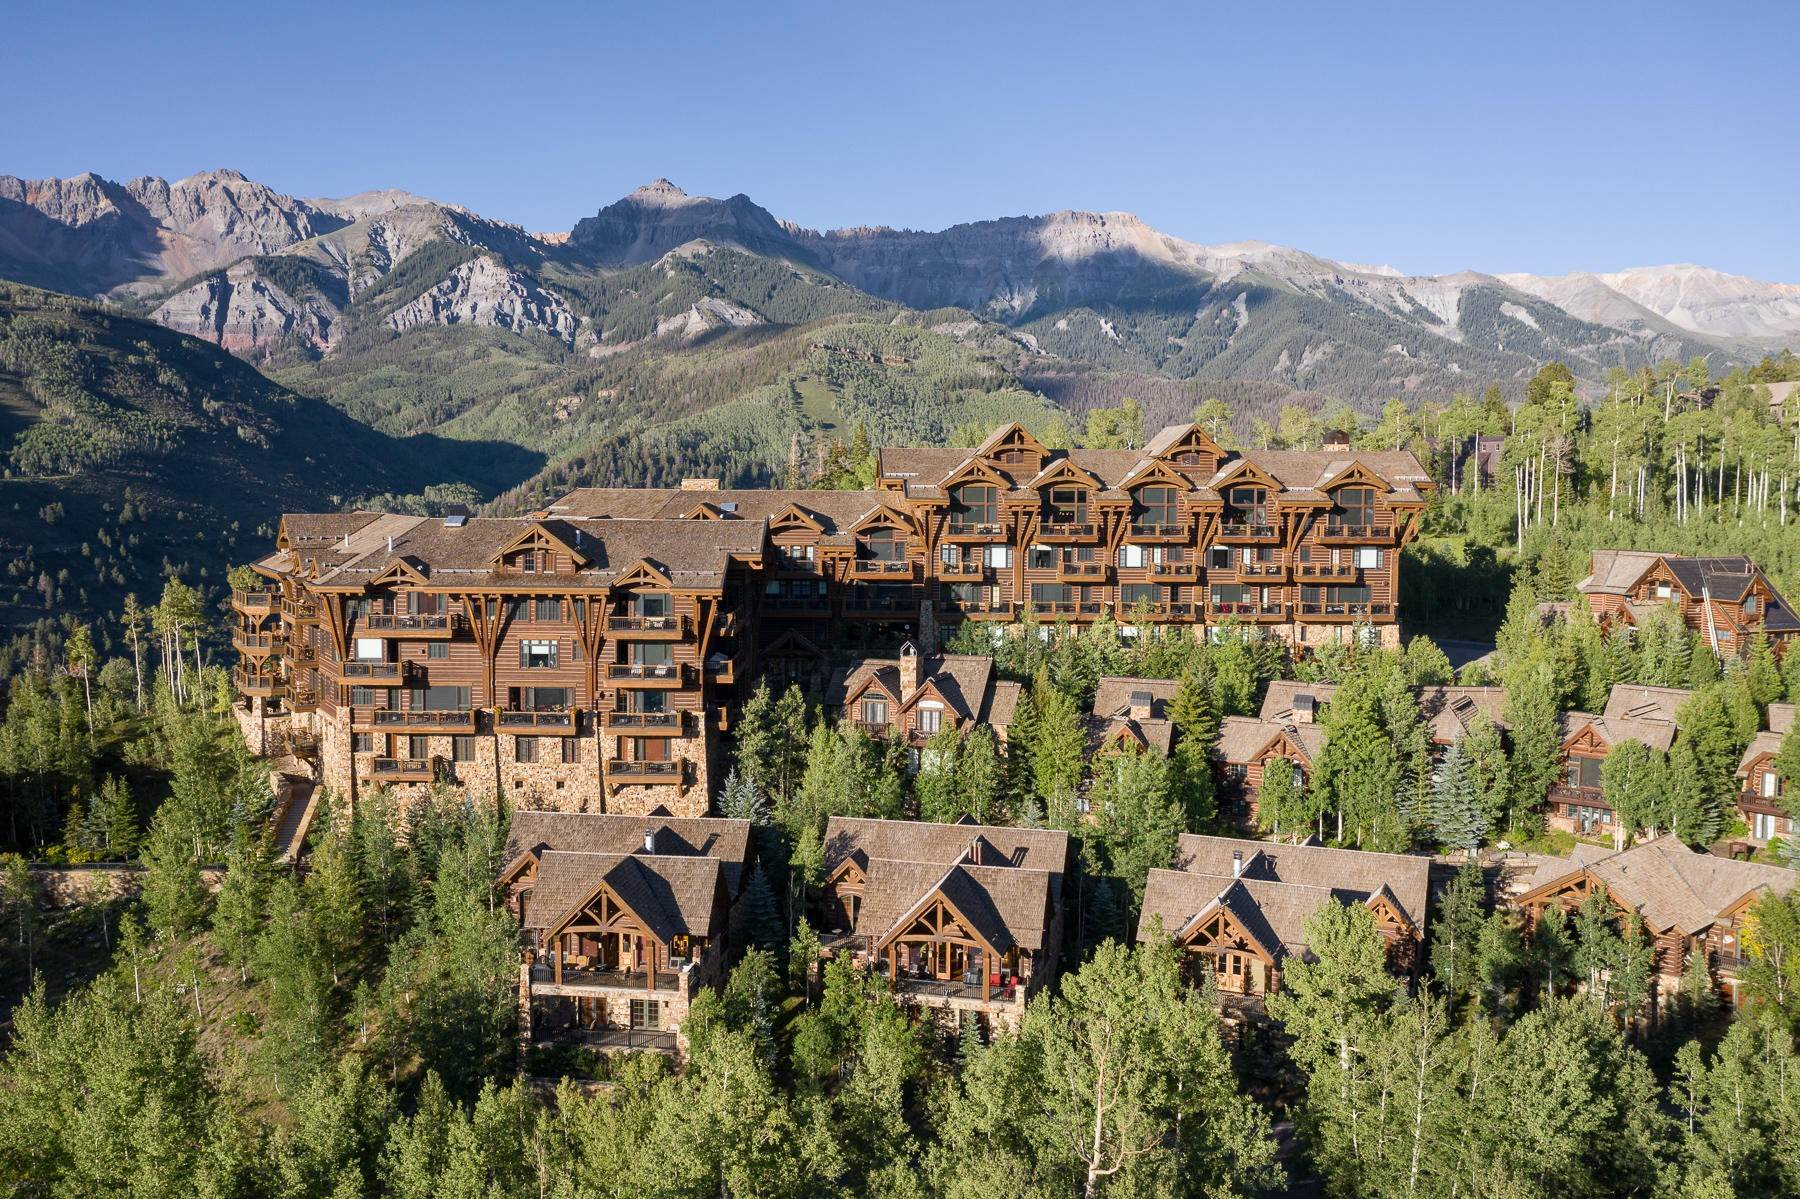 Condominium for Sale at 117 Sunny Ridge Place Mountain Village, Colorado,81435 United States